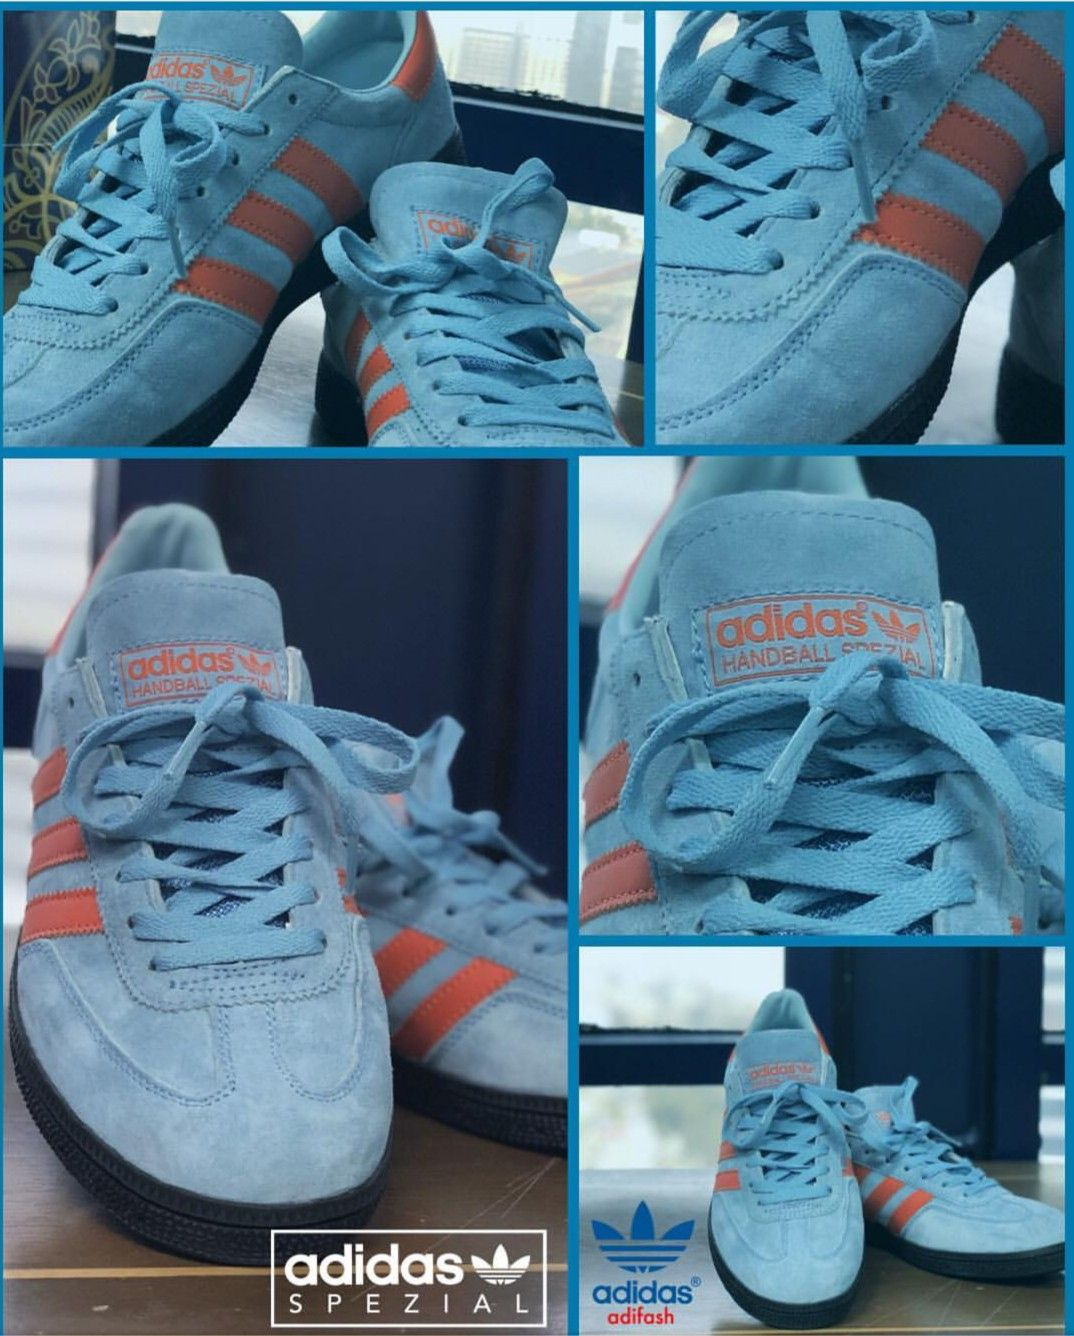 4dfb991bb68 New release coming soon - Handball Spezials in GT Manchester colourway.